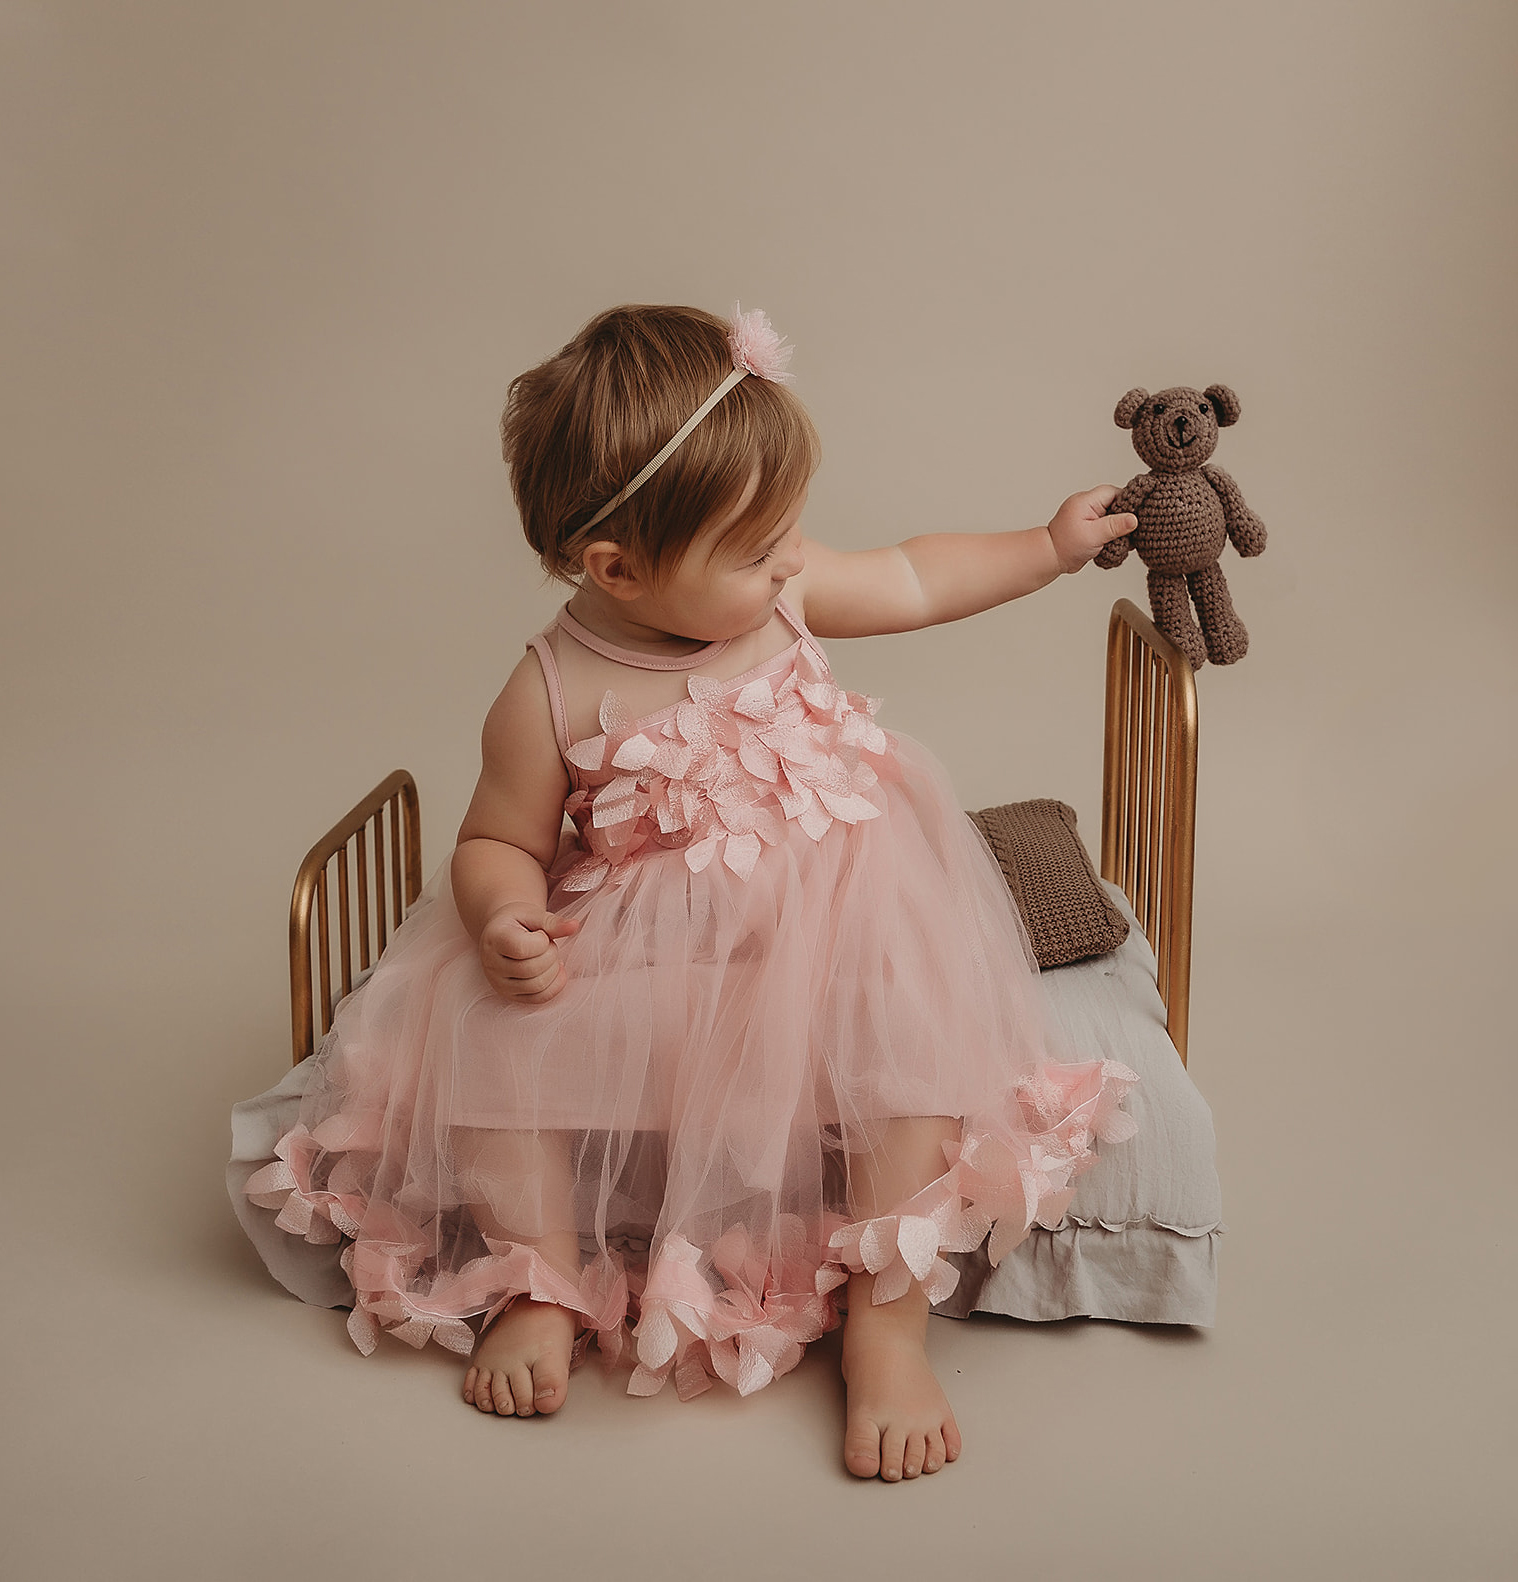 Toddler in pink dress sits on doll bed with teddy